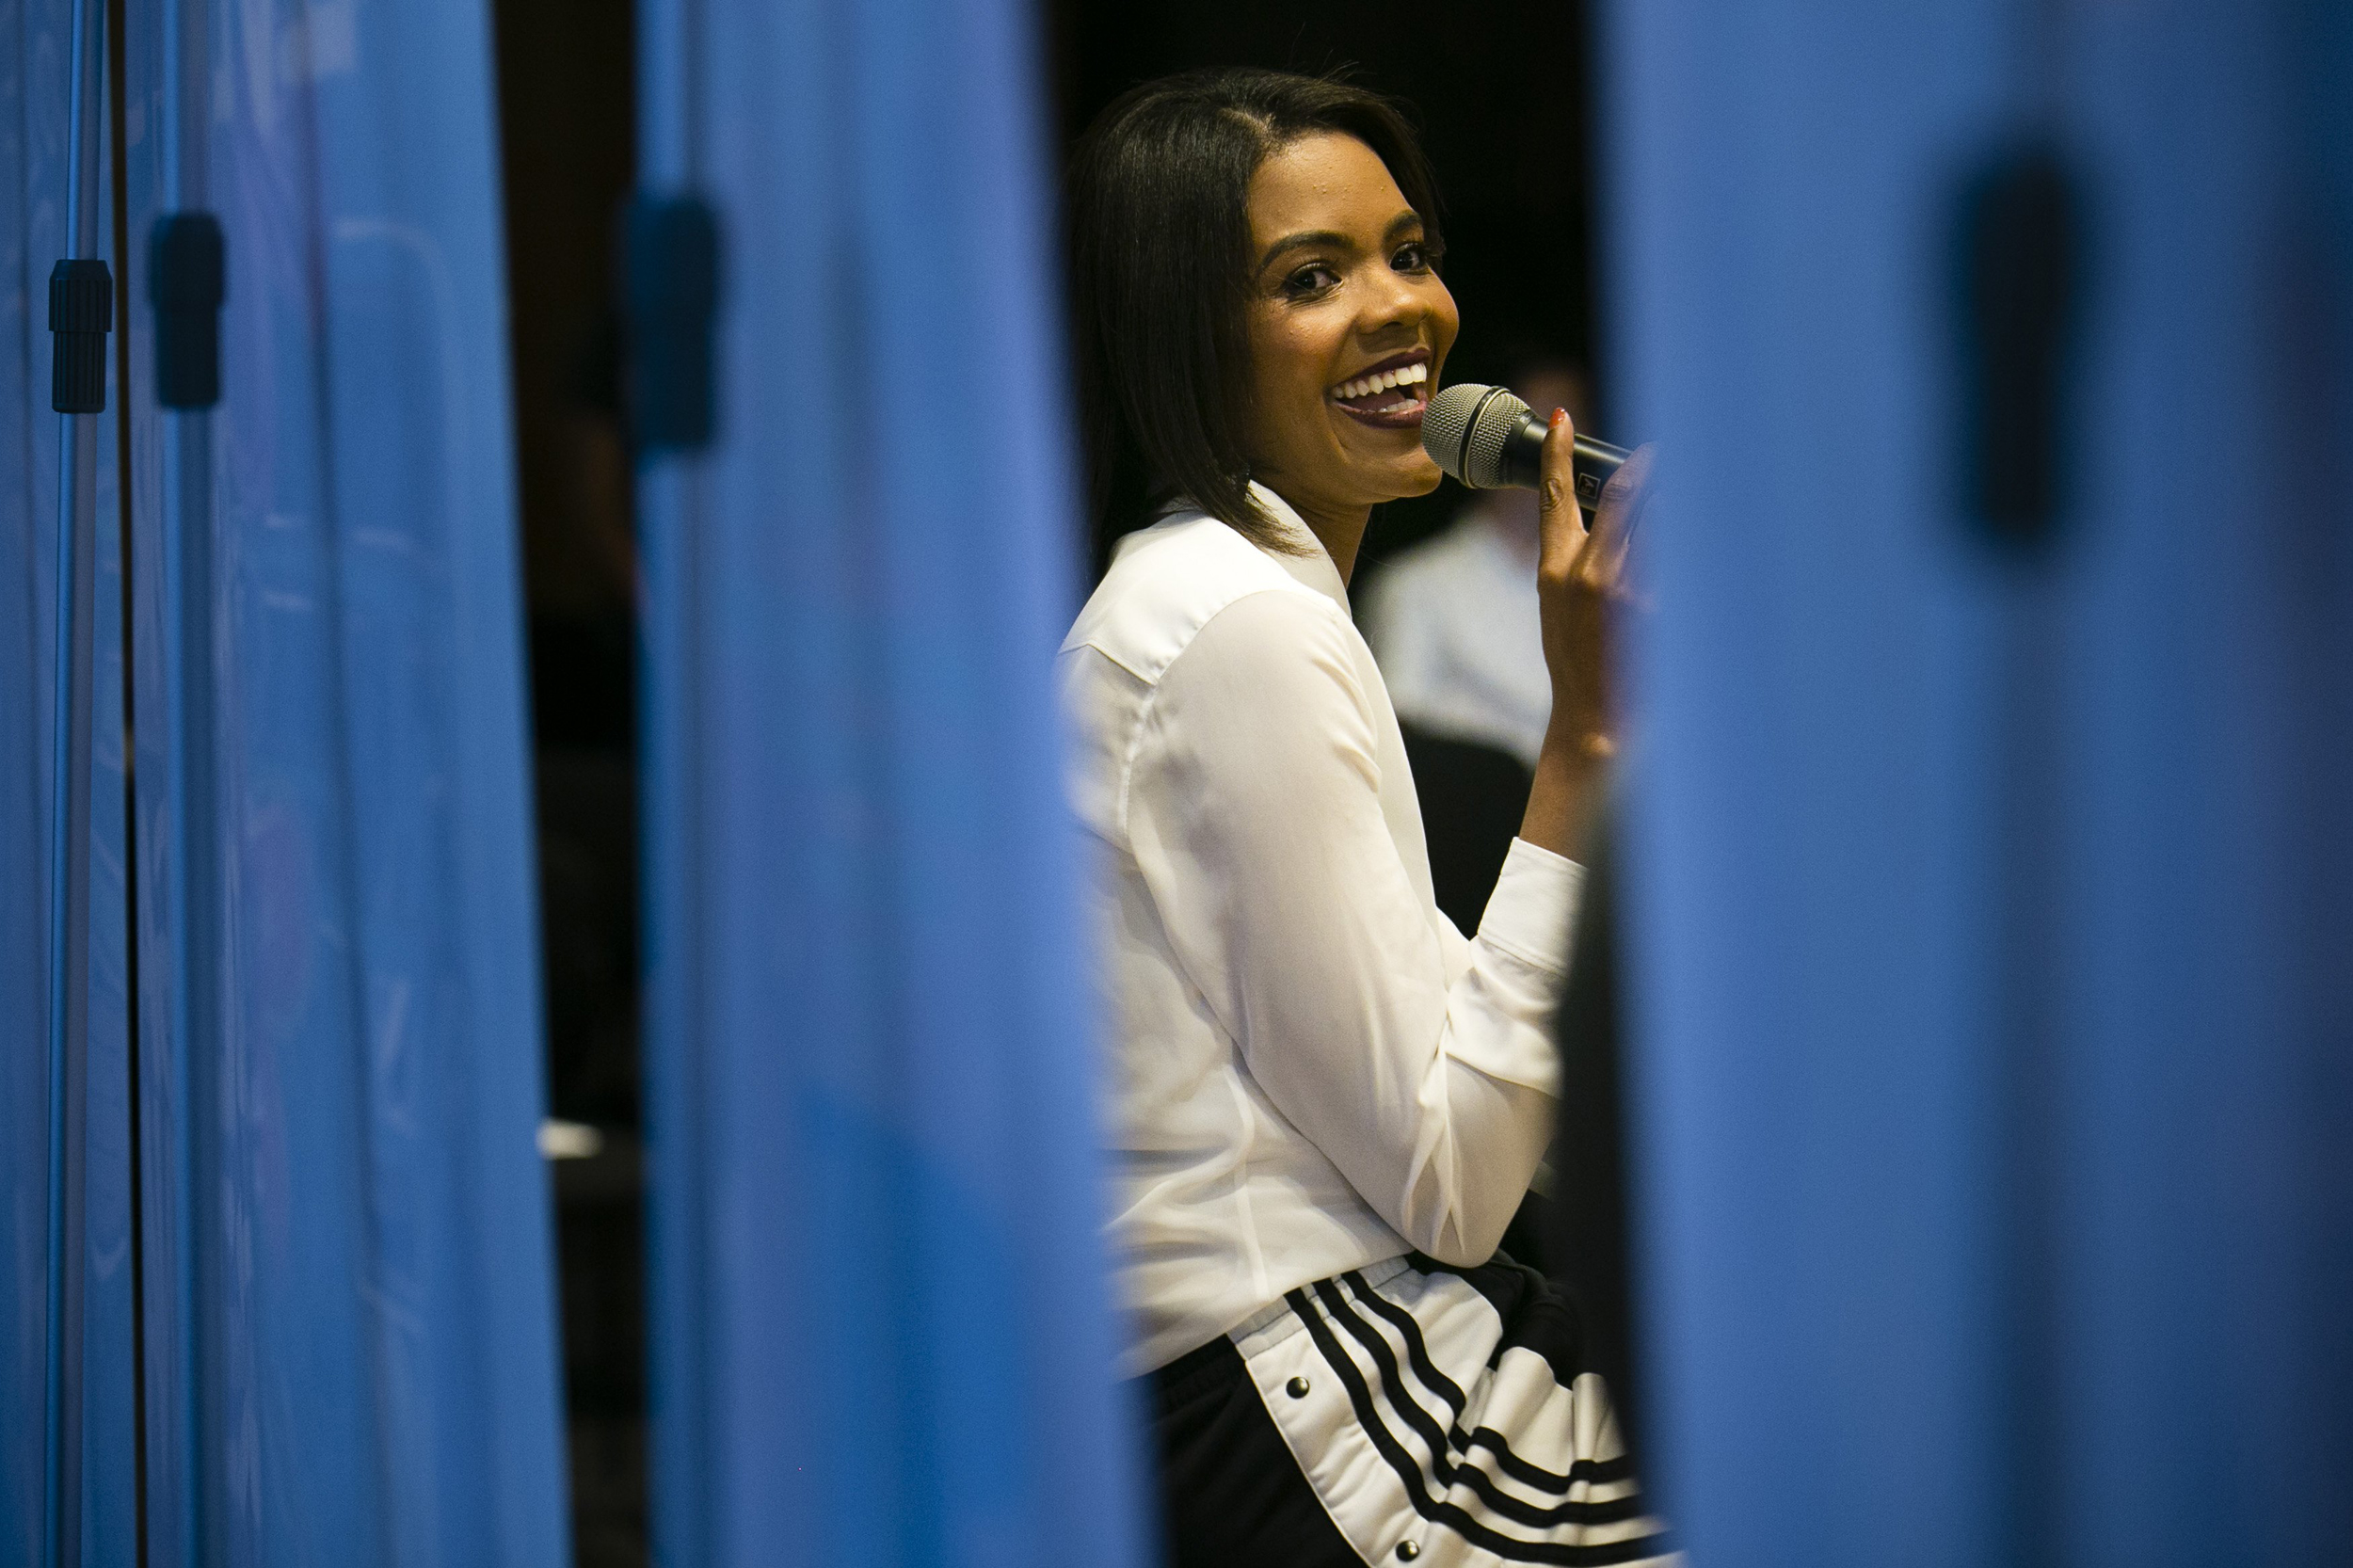 How Candace Owens suddenly became the loudest voice on the far right